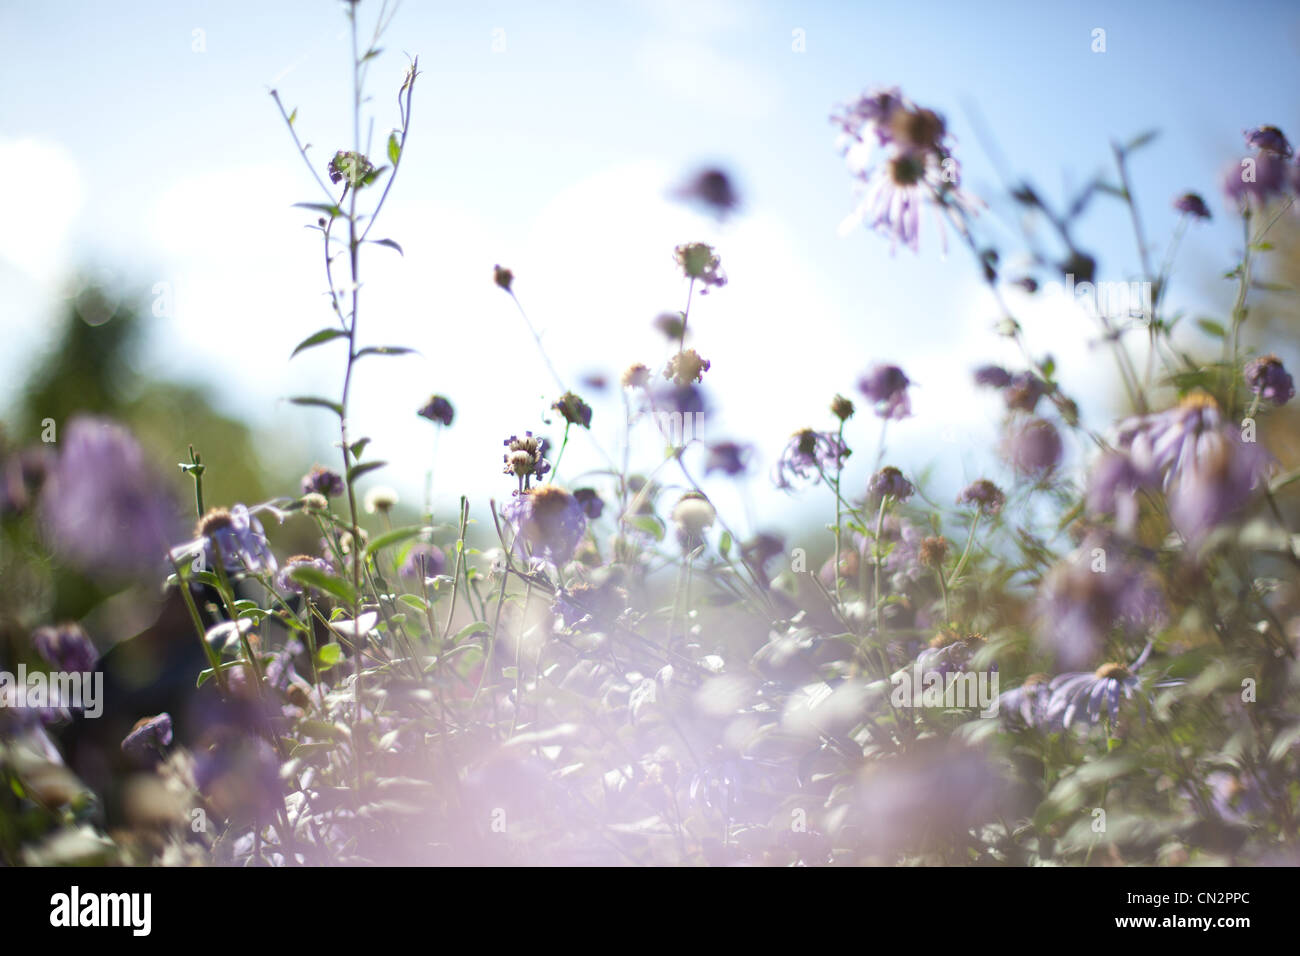 Wildflowers - Stock Image